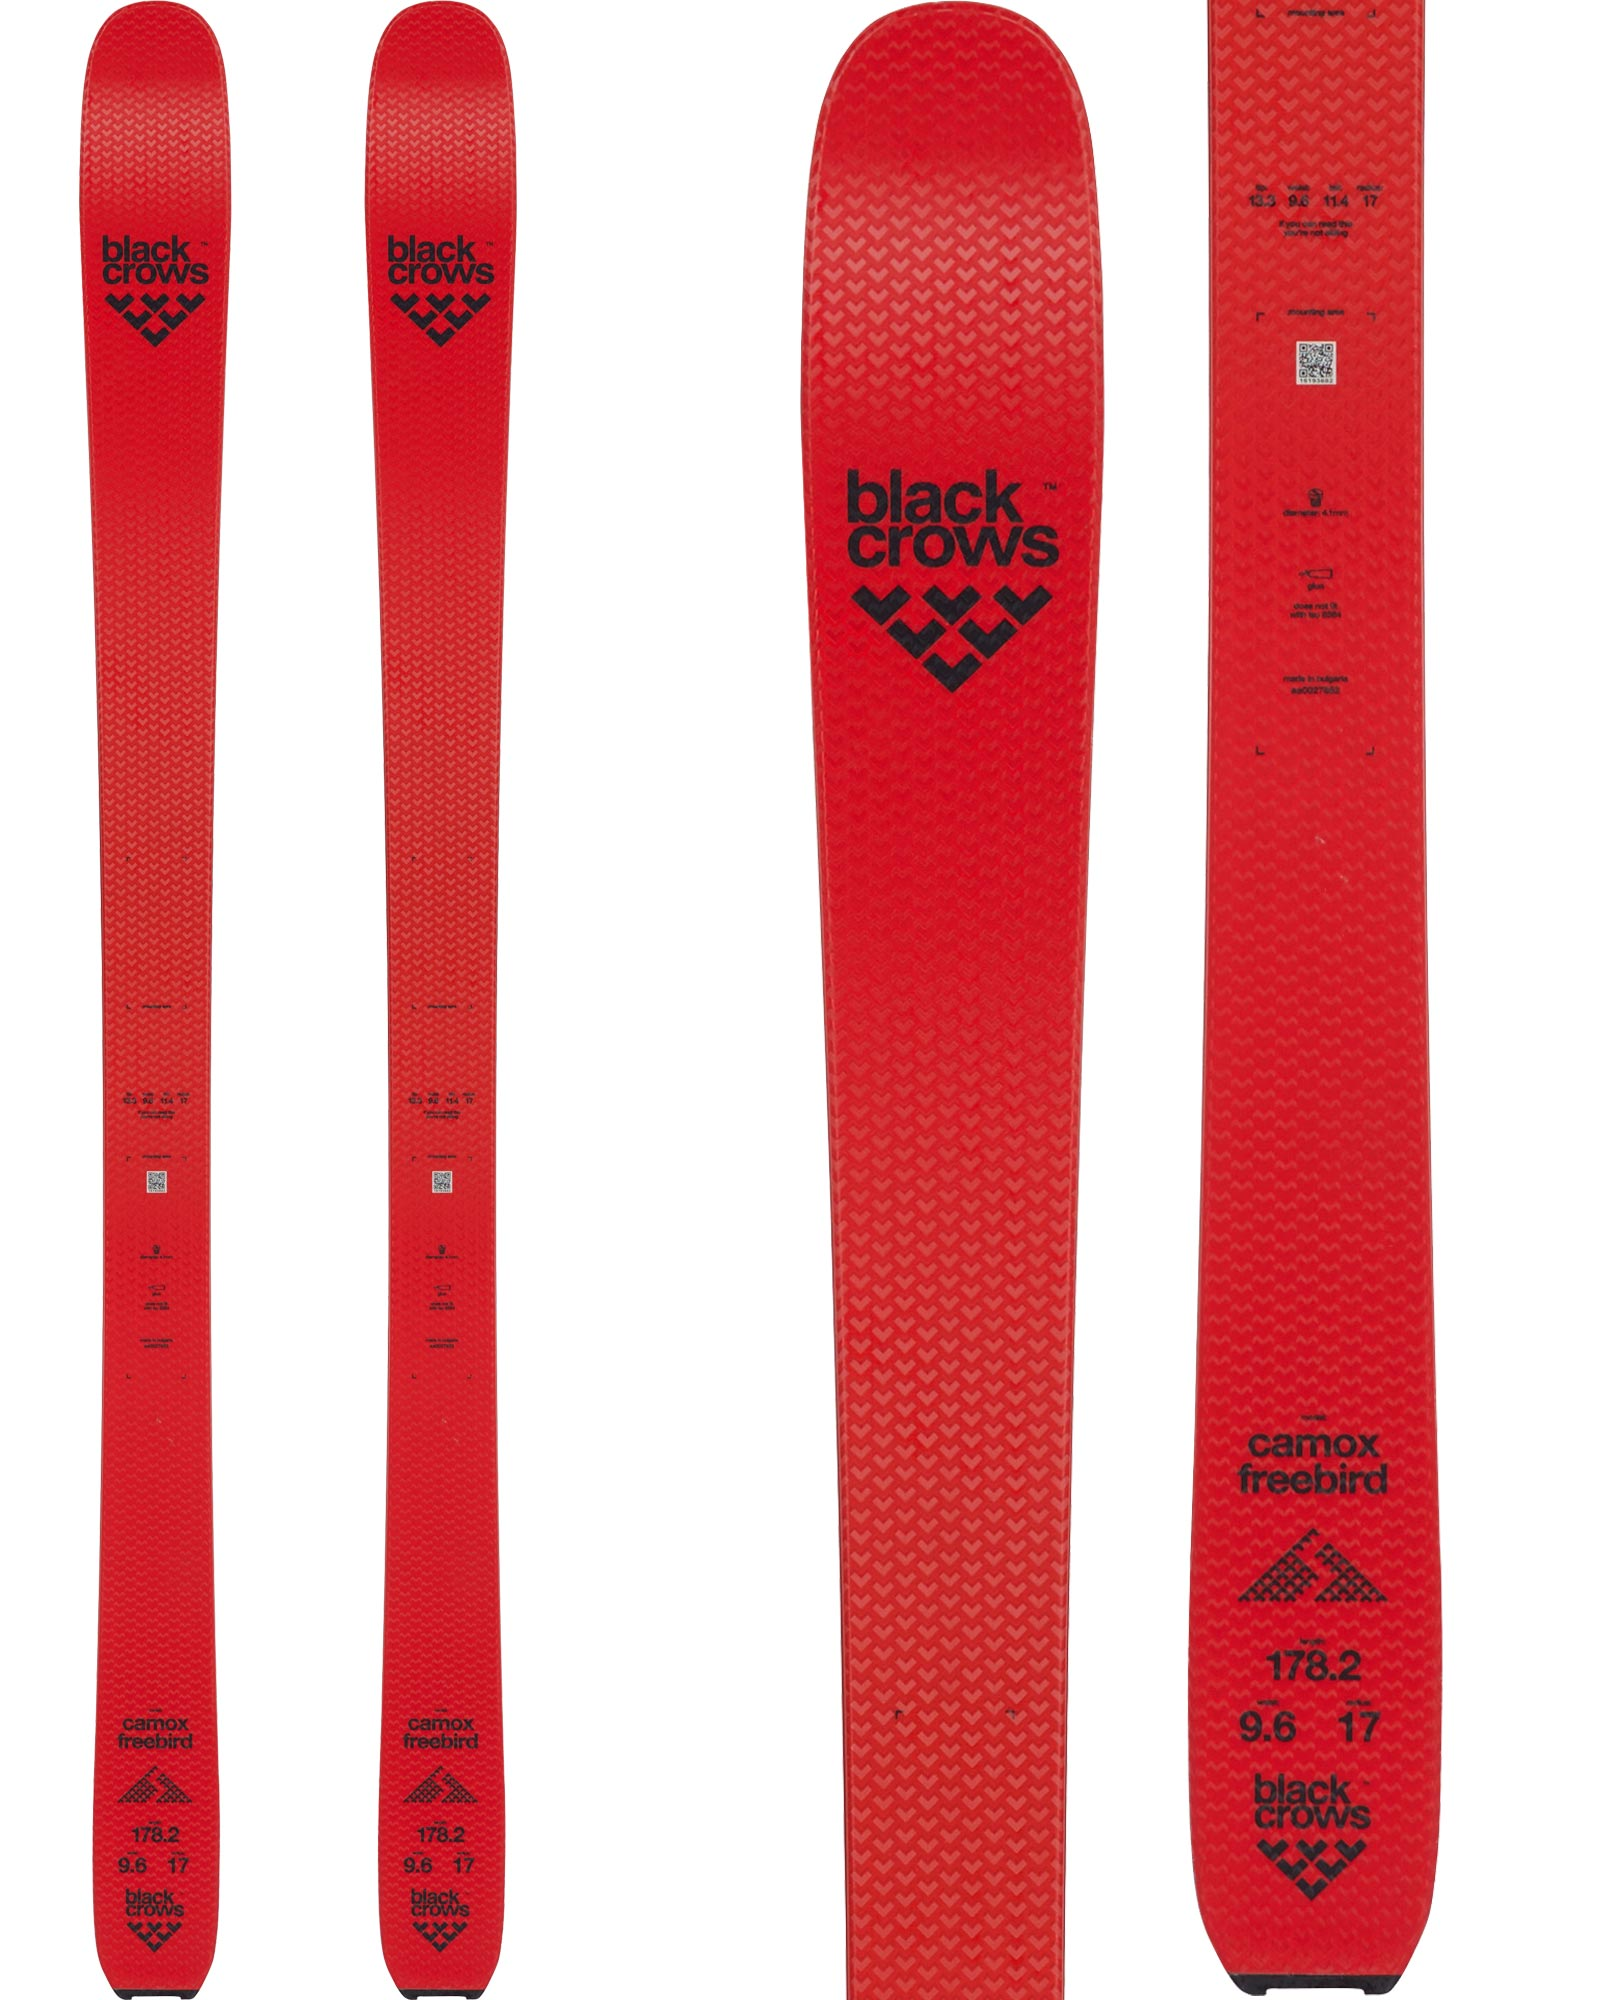 Black Crows Men's Camox Freebird Backcountry Skis 2020 / 2021 0